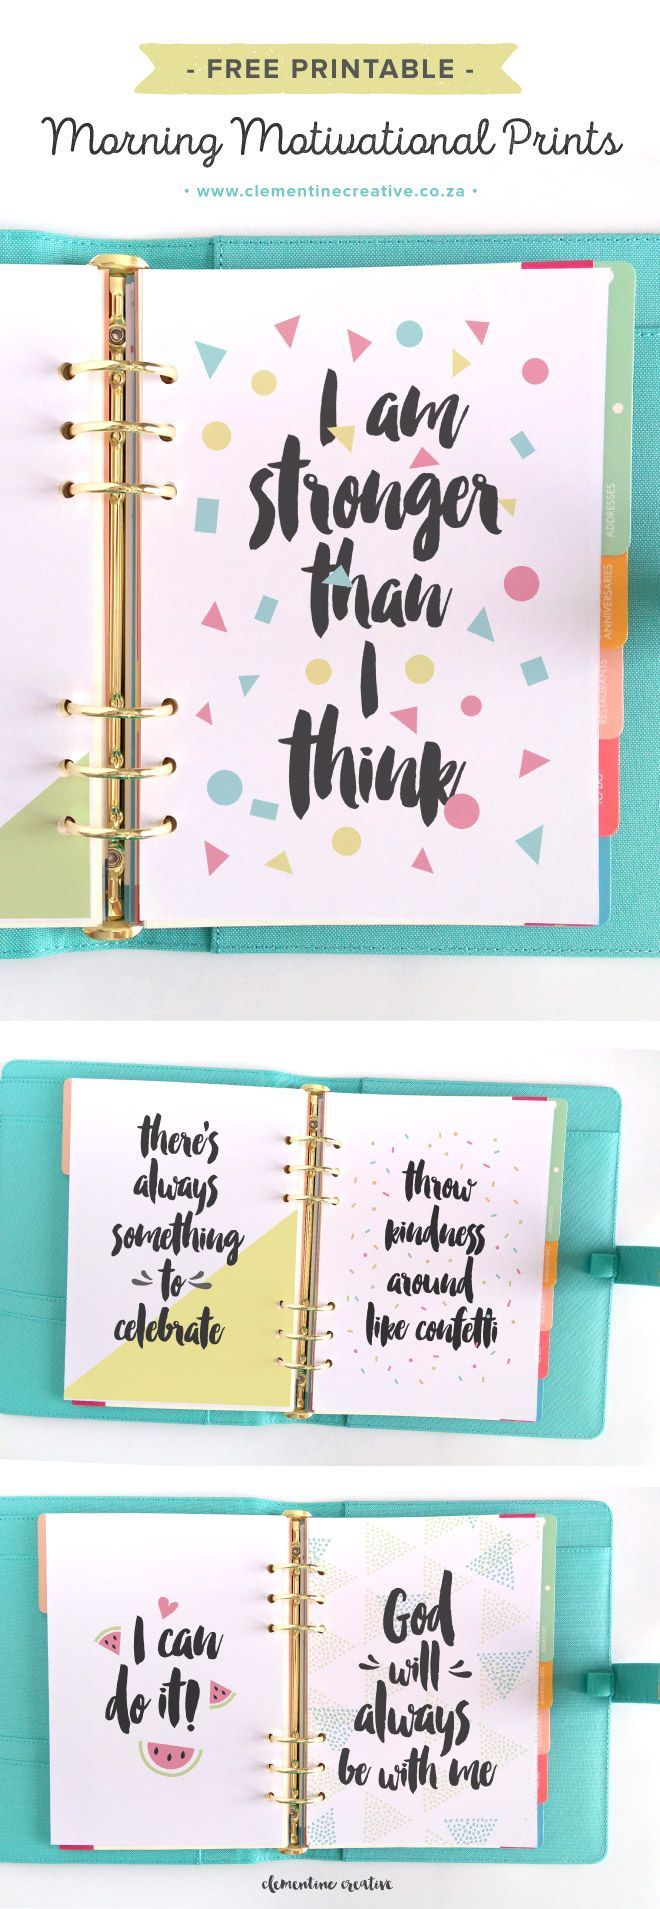 Morning Motivational Prints {Free Printable} - Clementine Creative | DIY Printable Stationery